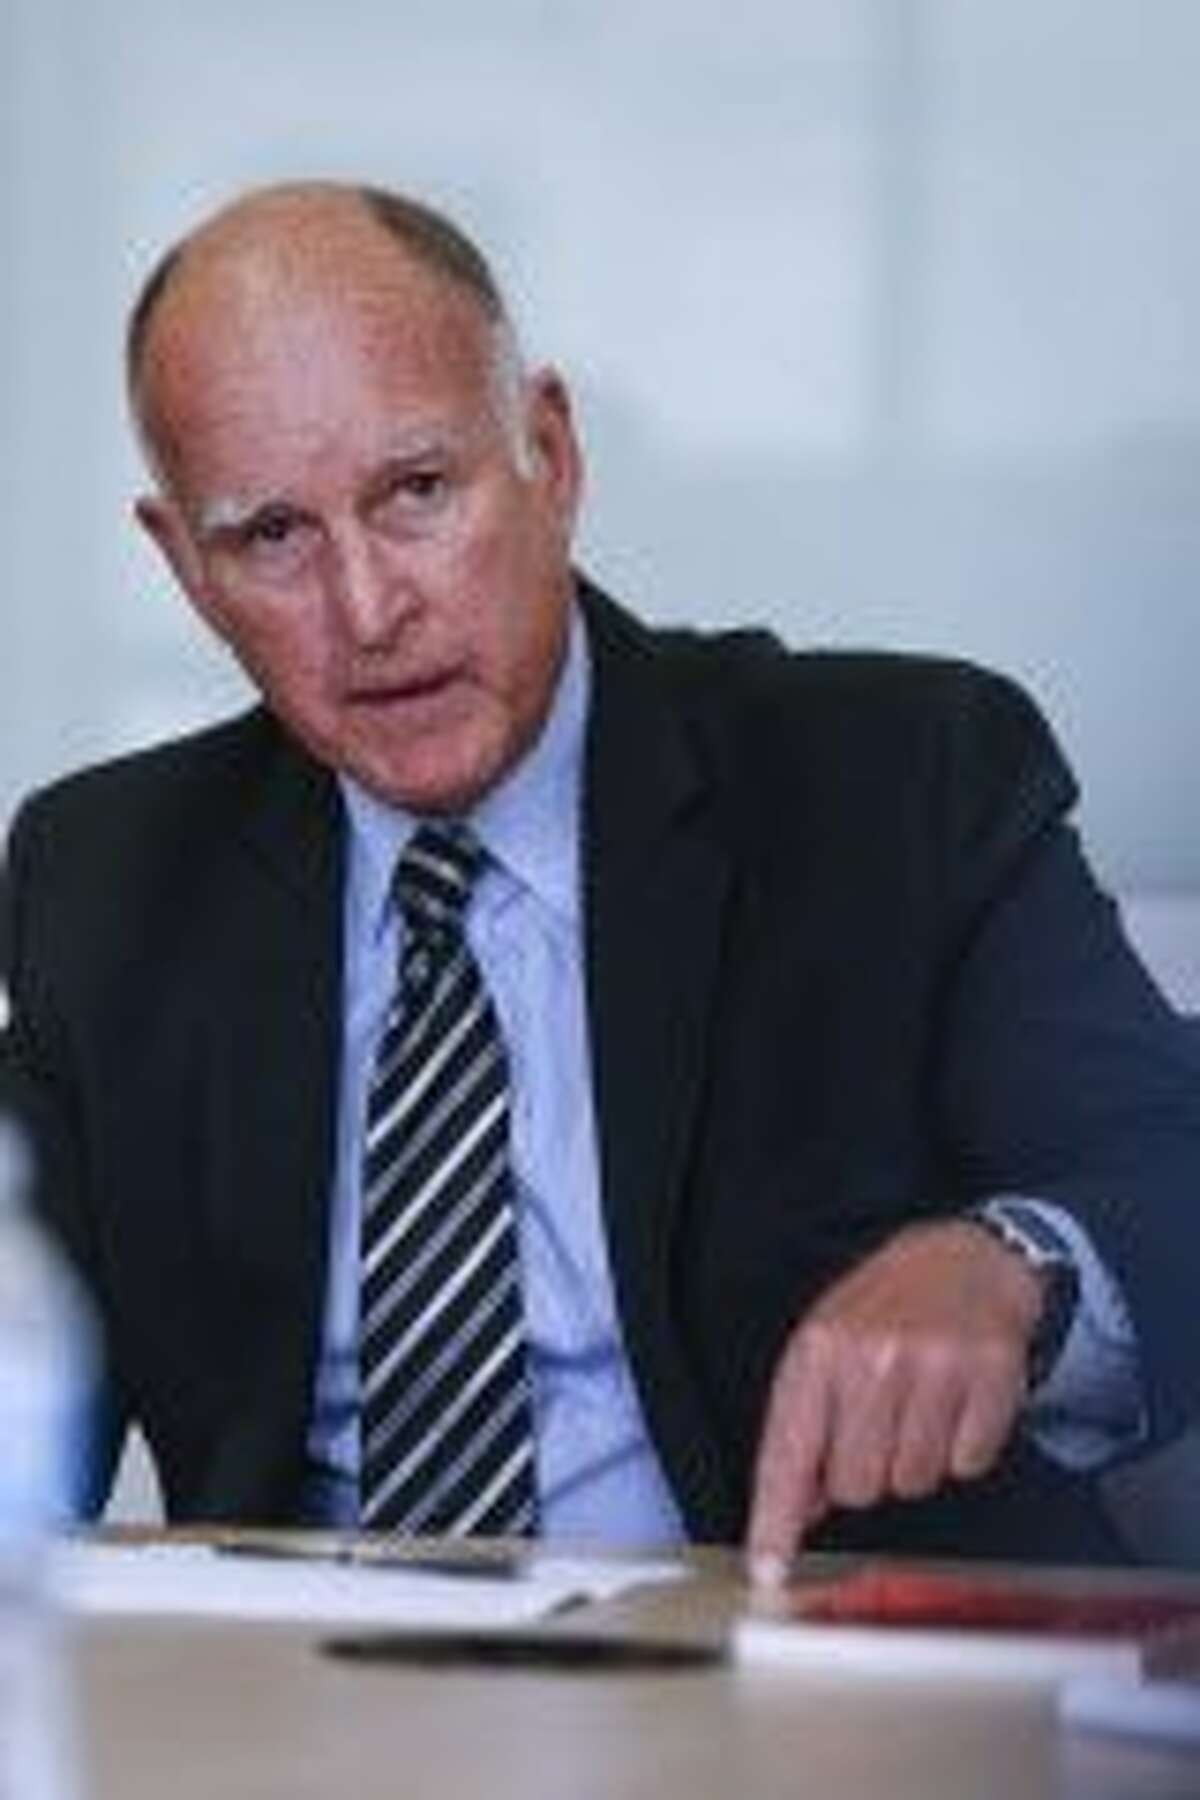 Gov. Jerry Brown speaks to the SF Chronicle Editorial Board about Proposition 57, which would change sentencing guidelines, on Friday, Sept. 9, 2016 in San Francisco, Calif.